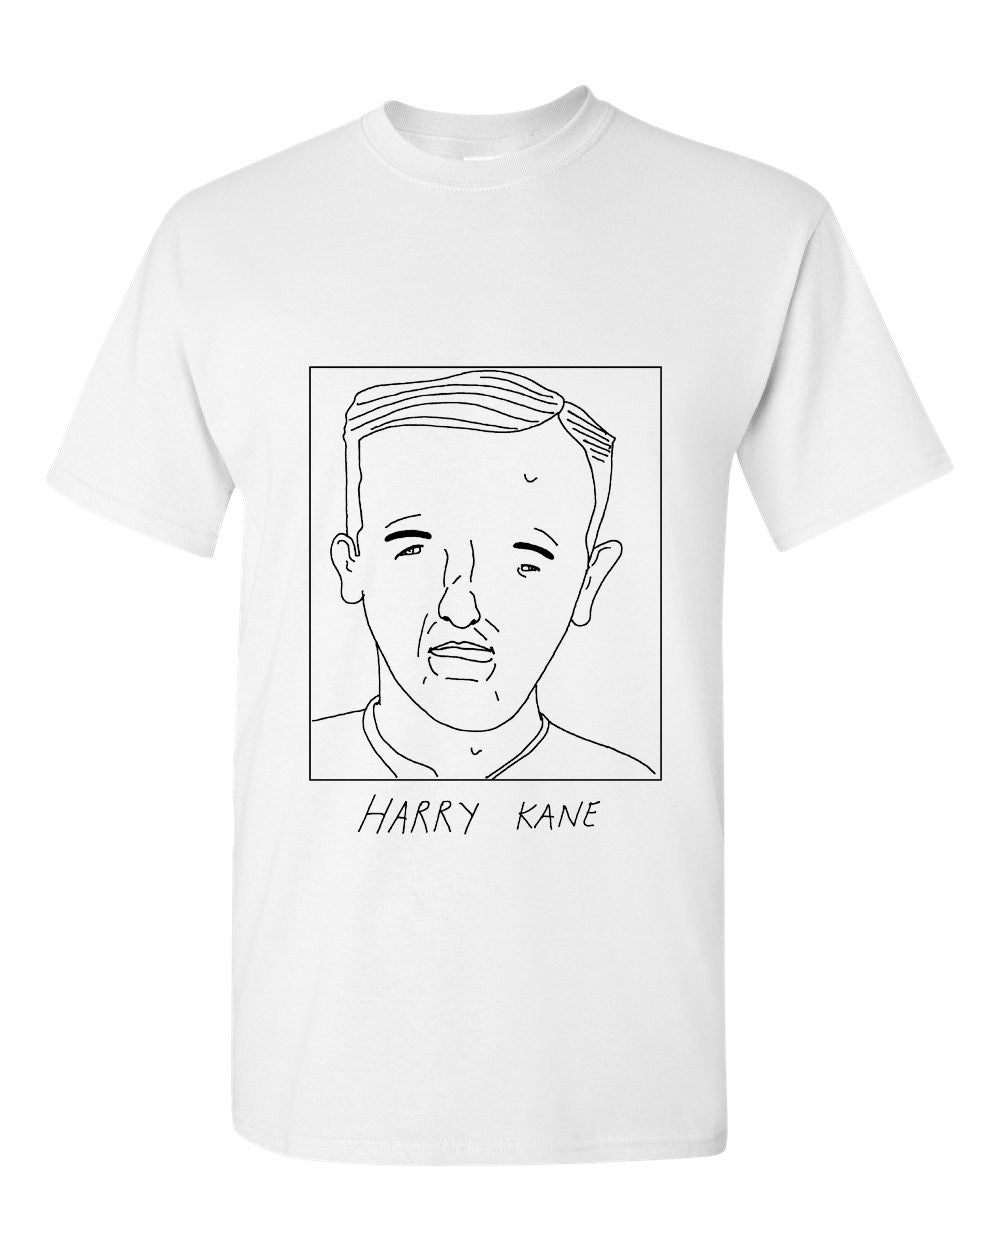 Badly Drawn Harry Kane T-shirt - Tottenham FC